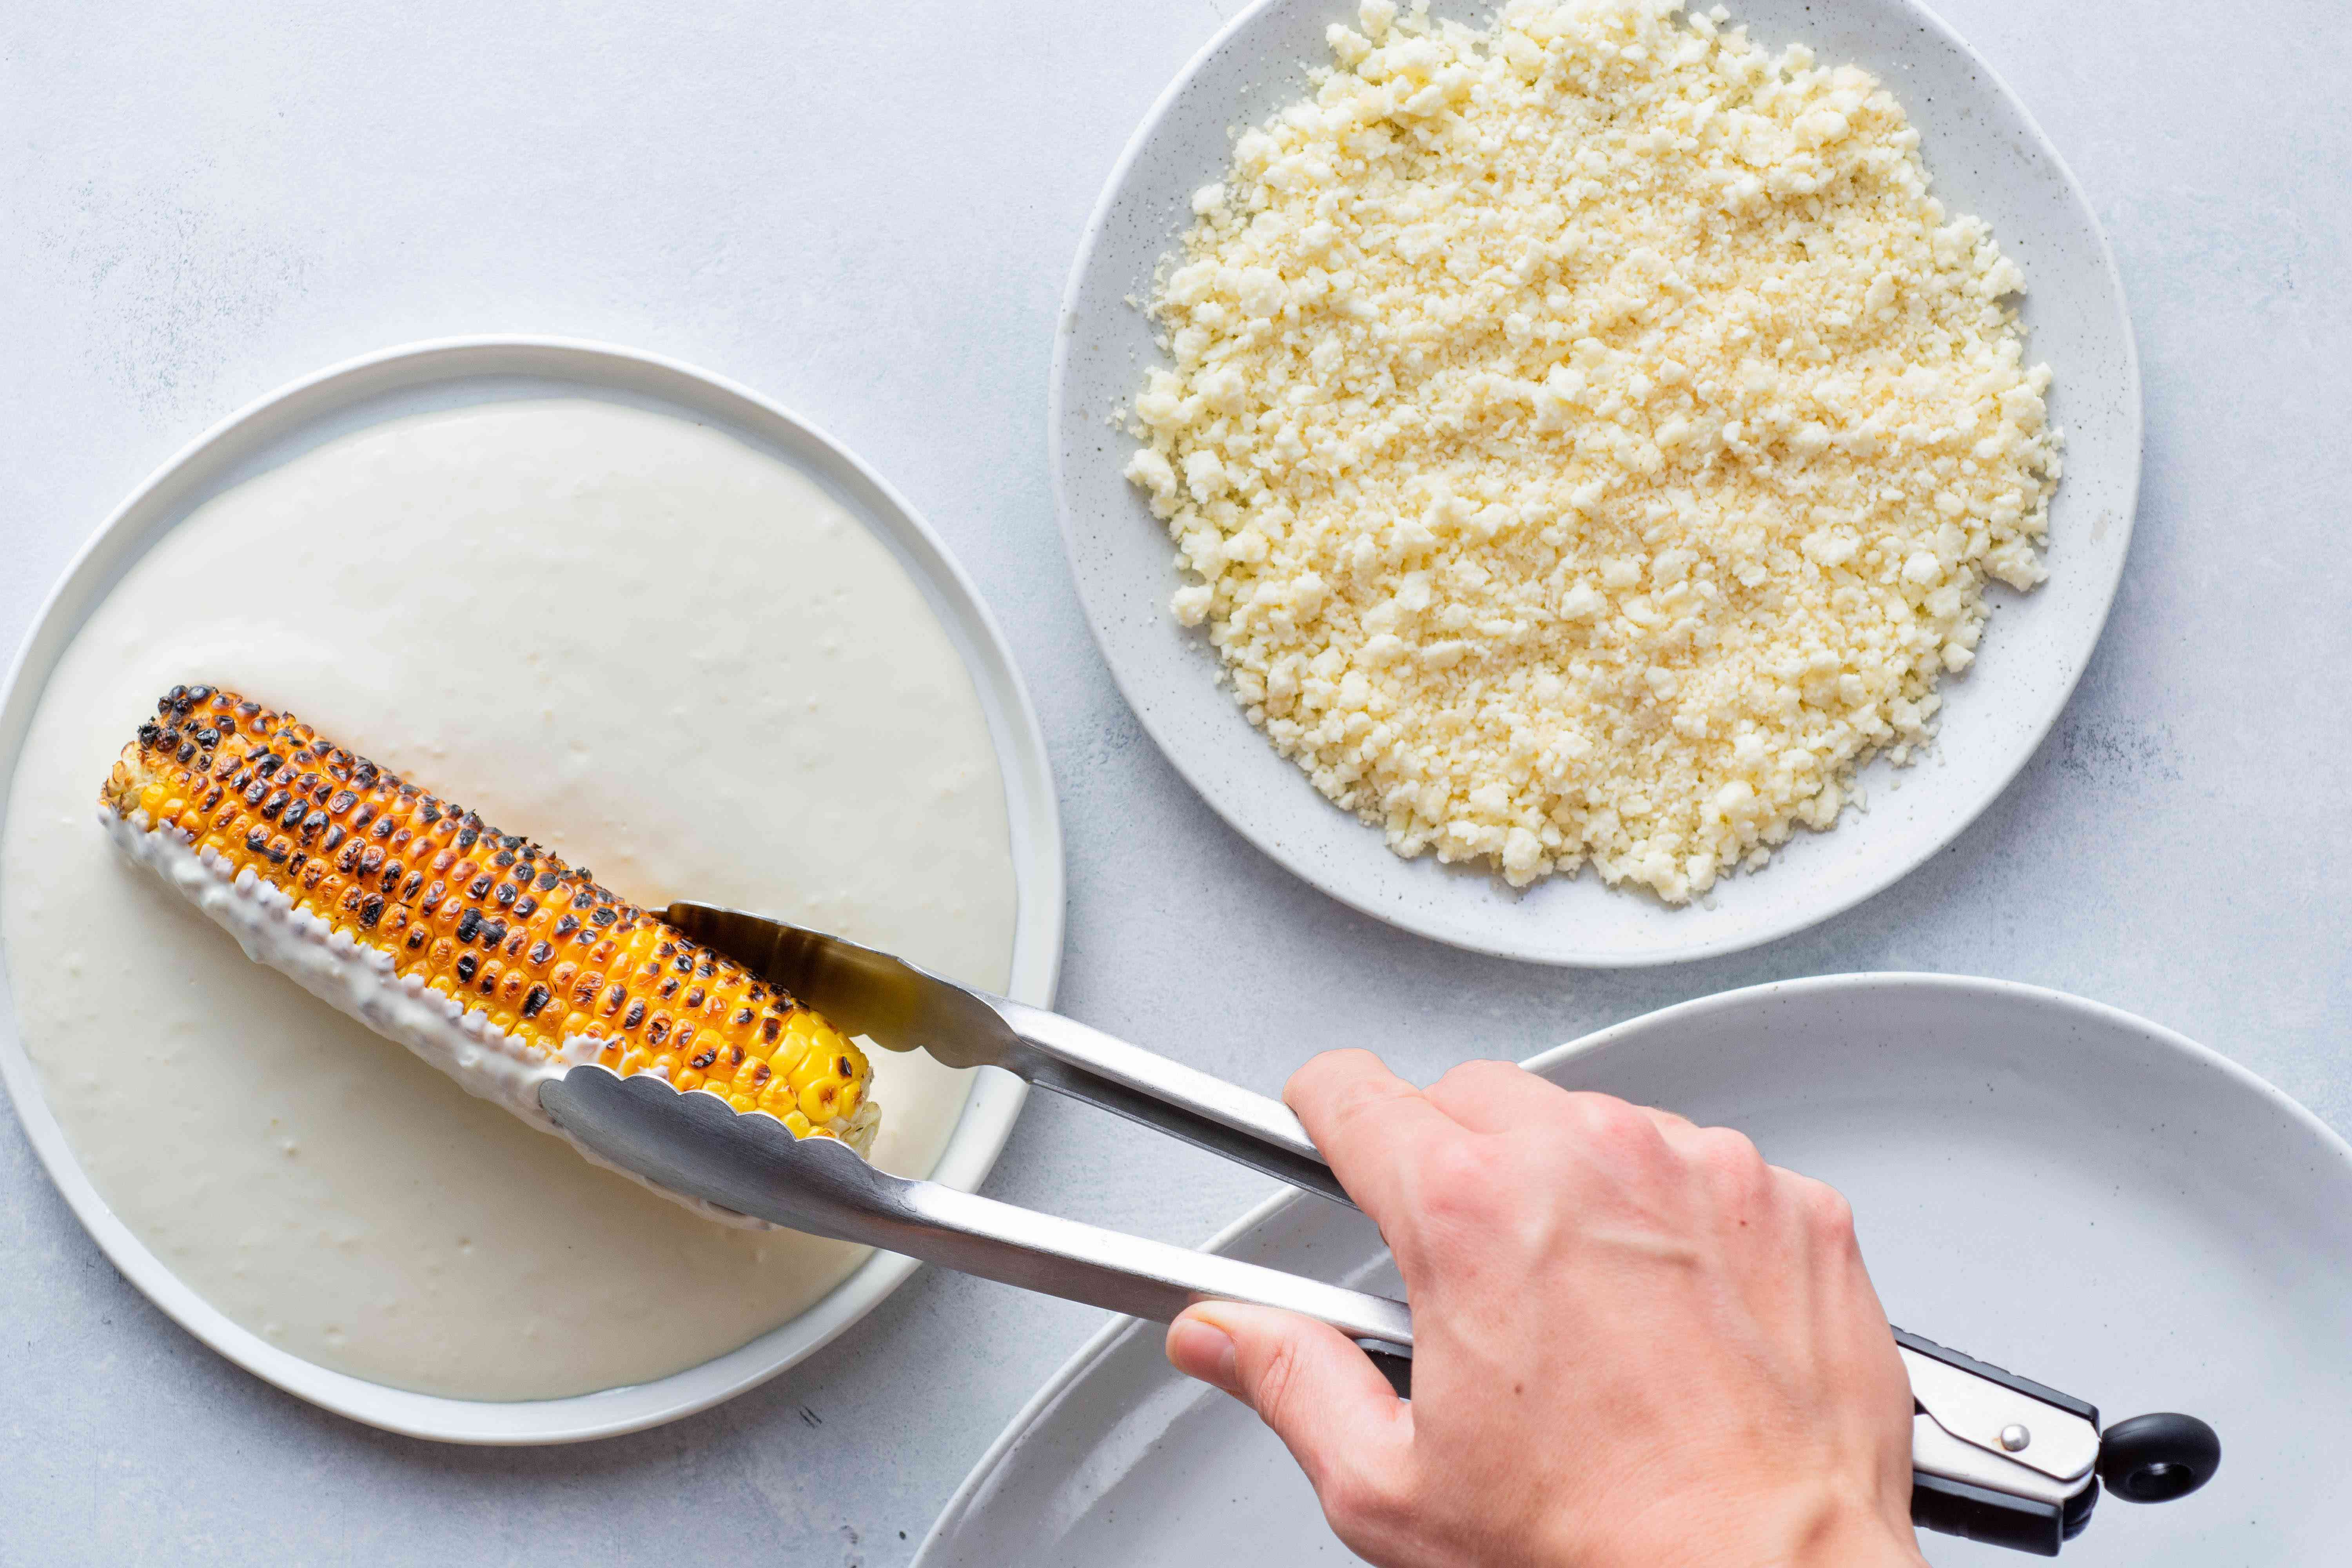 roll roasted corn in mayo mixture